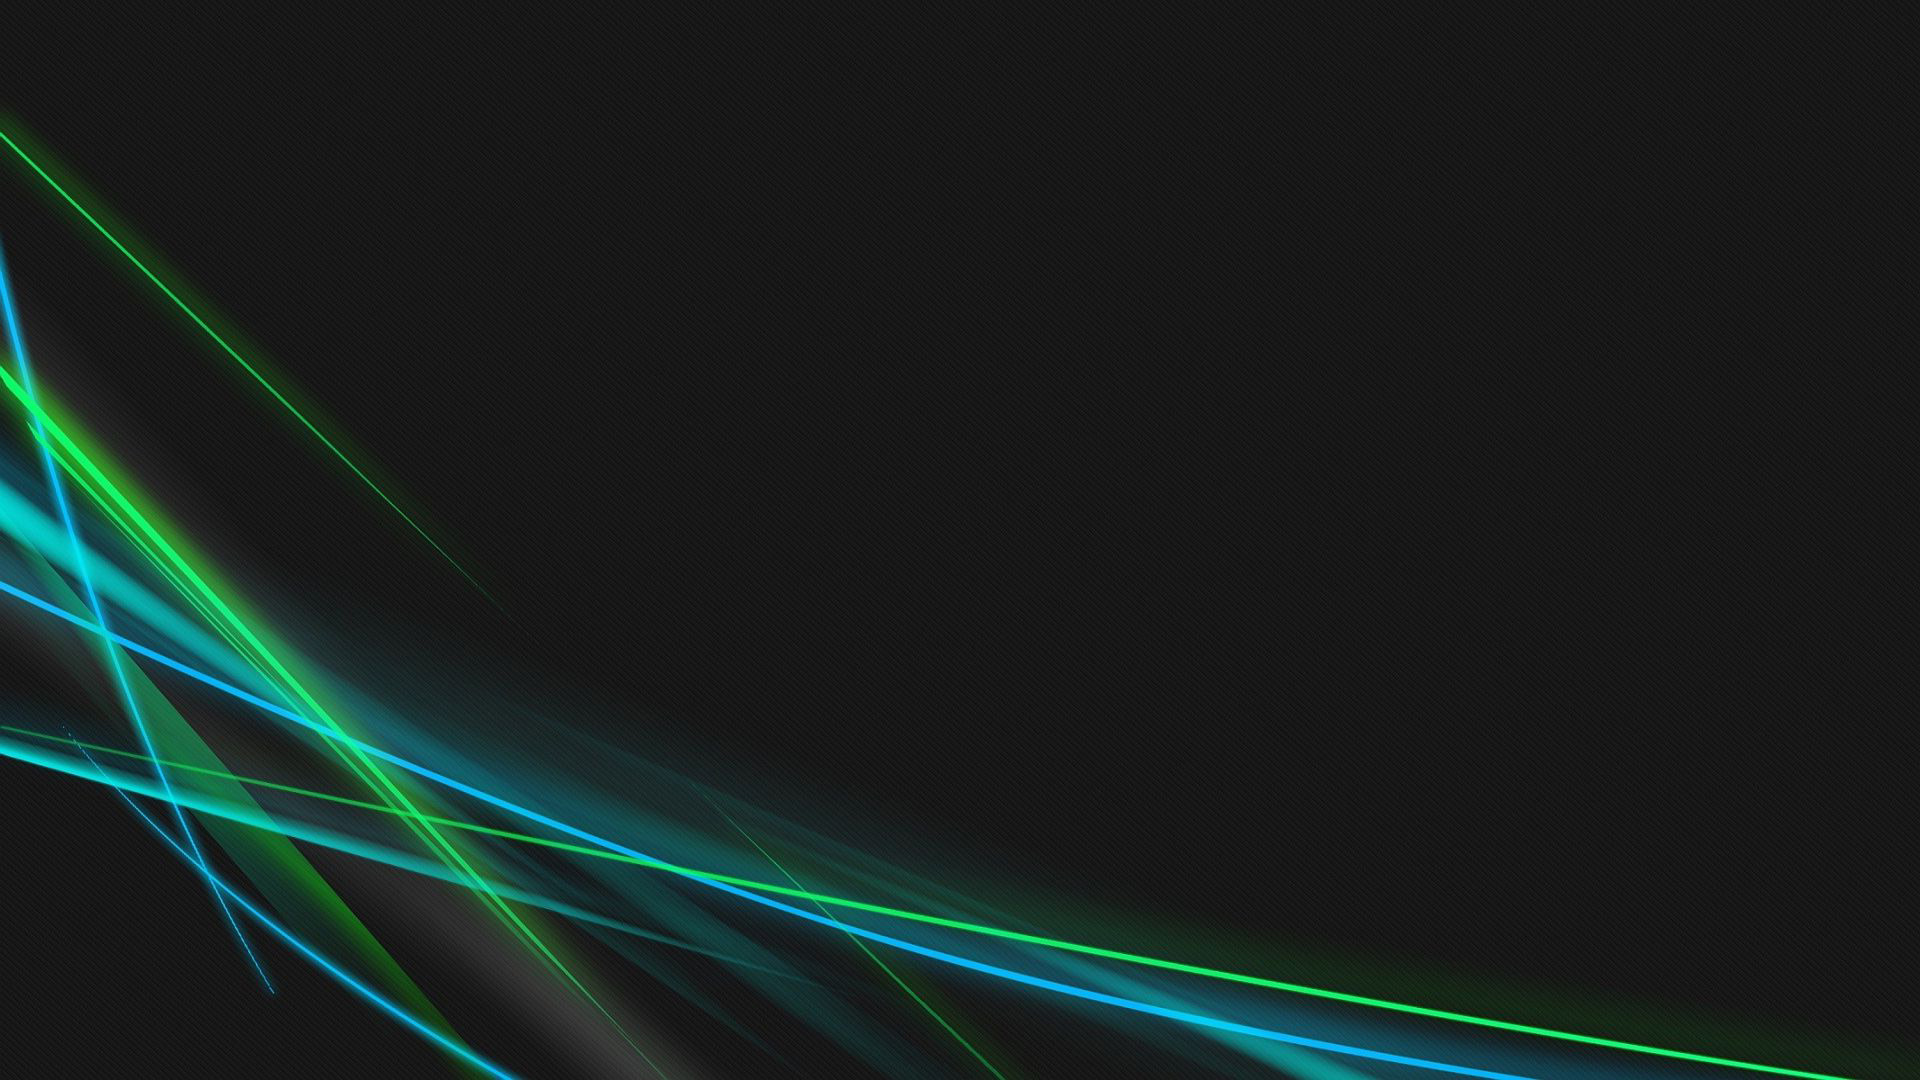 Green Neon Backgrounds HD 1920x1080